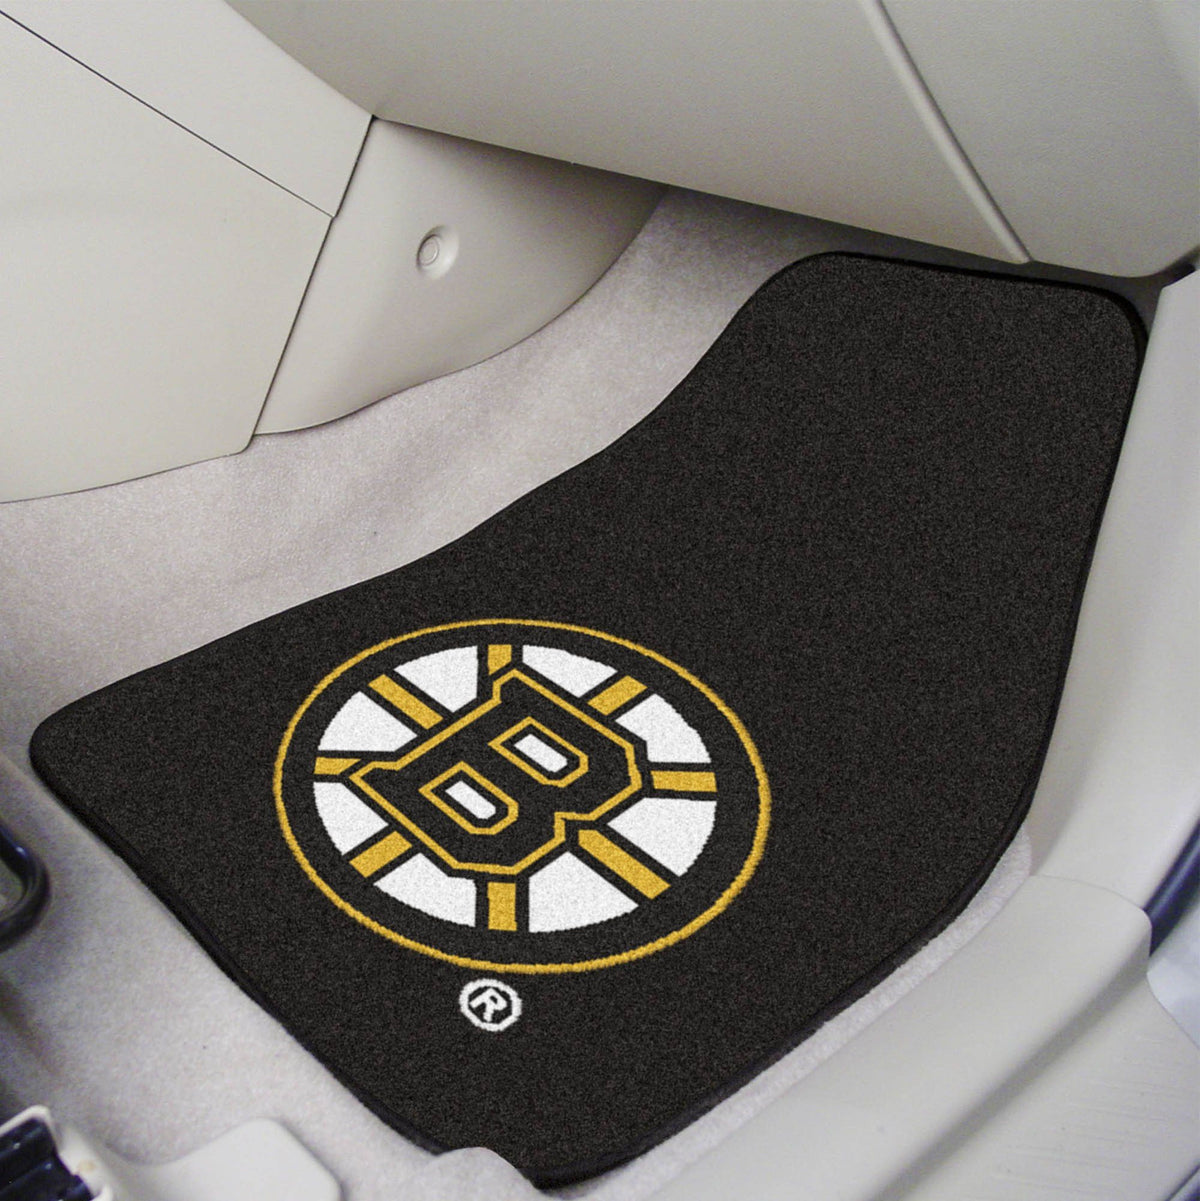 NHL - Carpet Car Mat, 2-Piece Set NHL Mats, Front Car Mats, 2-pc Carpet Car Mat Set, NHL, Auto Fan Mats Boston Bruins